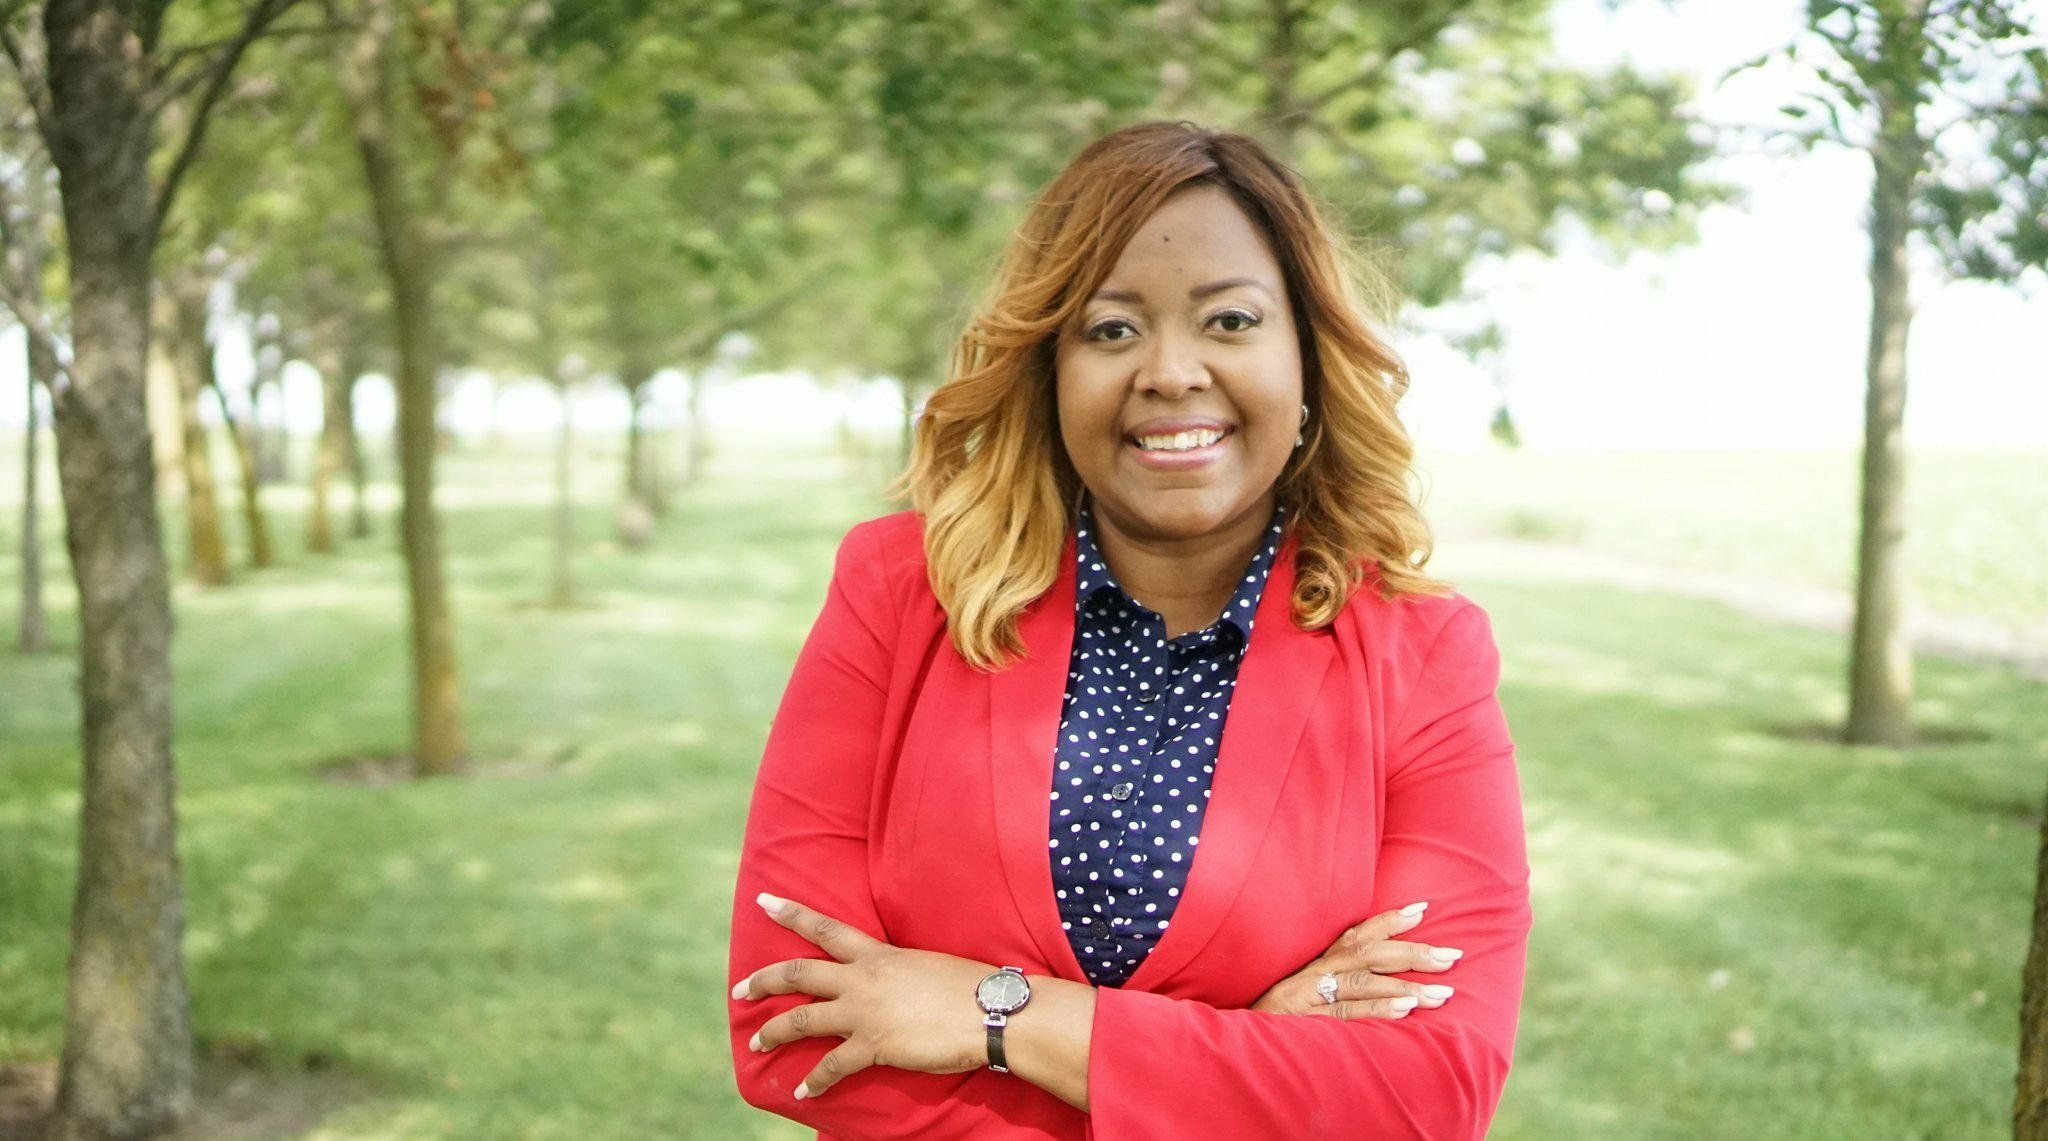 Nikita Richards is running for McLean County Clerk in Illinois